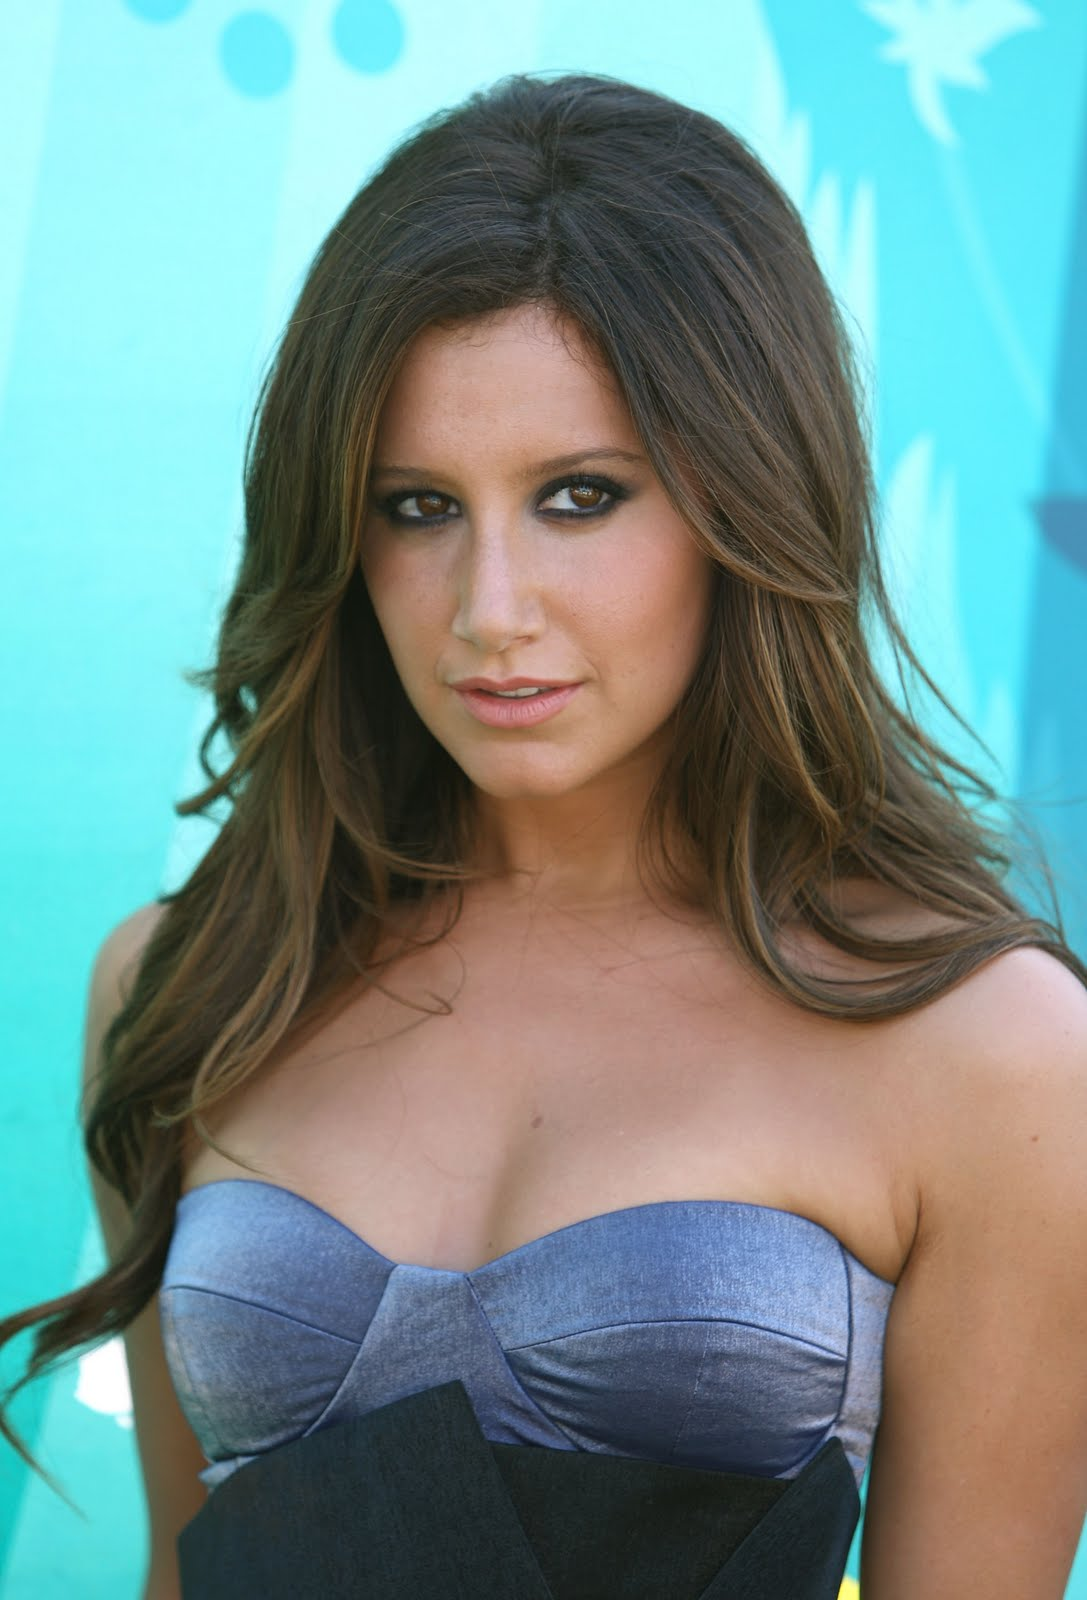 Nude pics of ashley tisdale photos 94